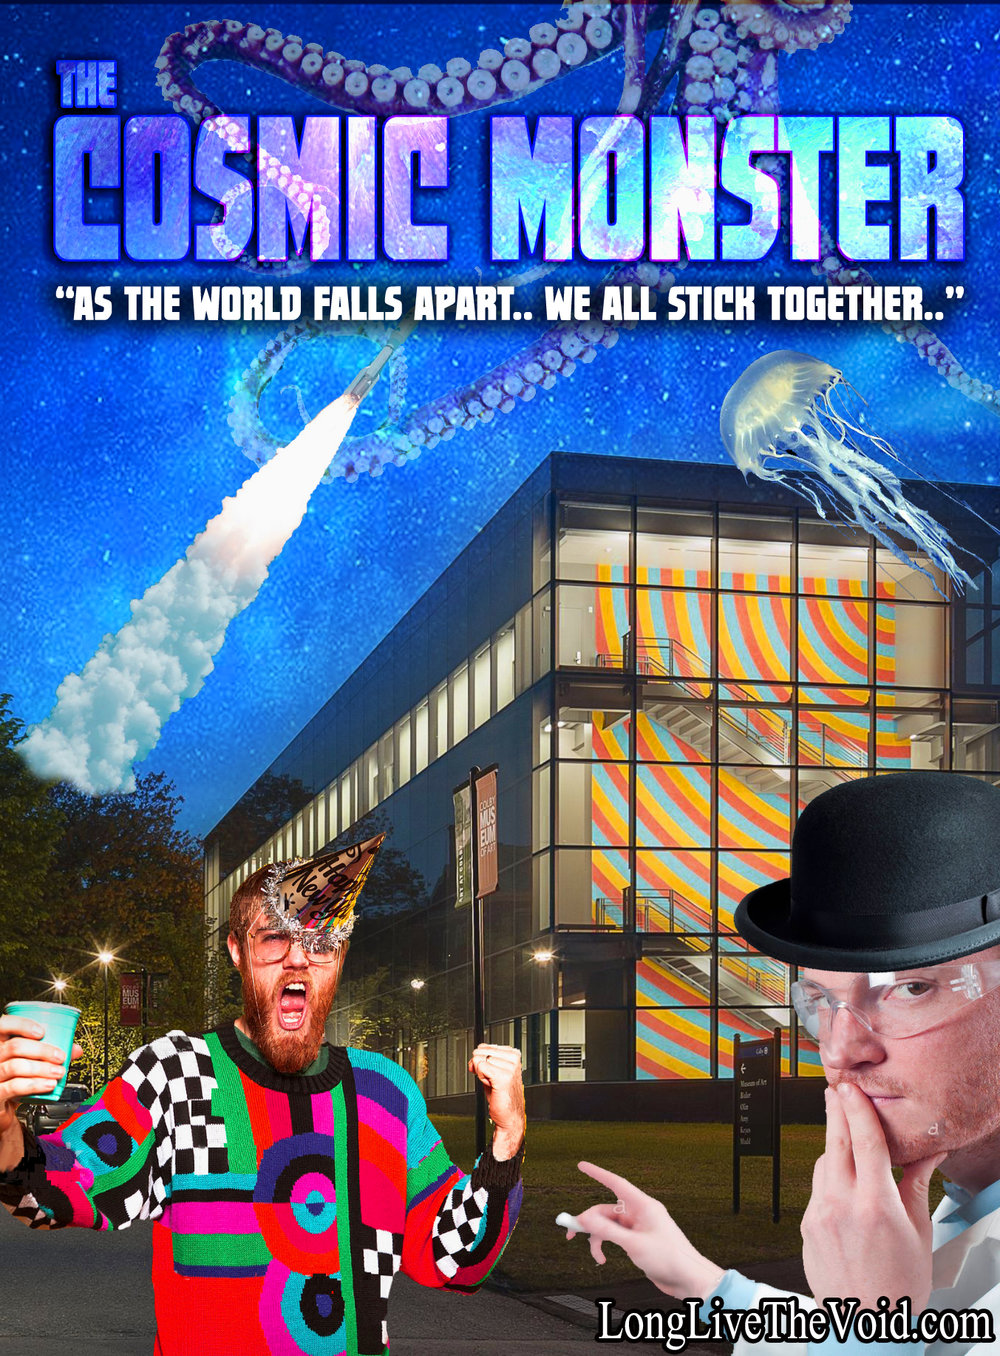 The Cosmic Monster